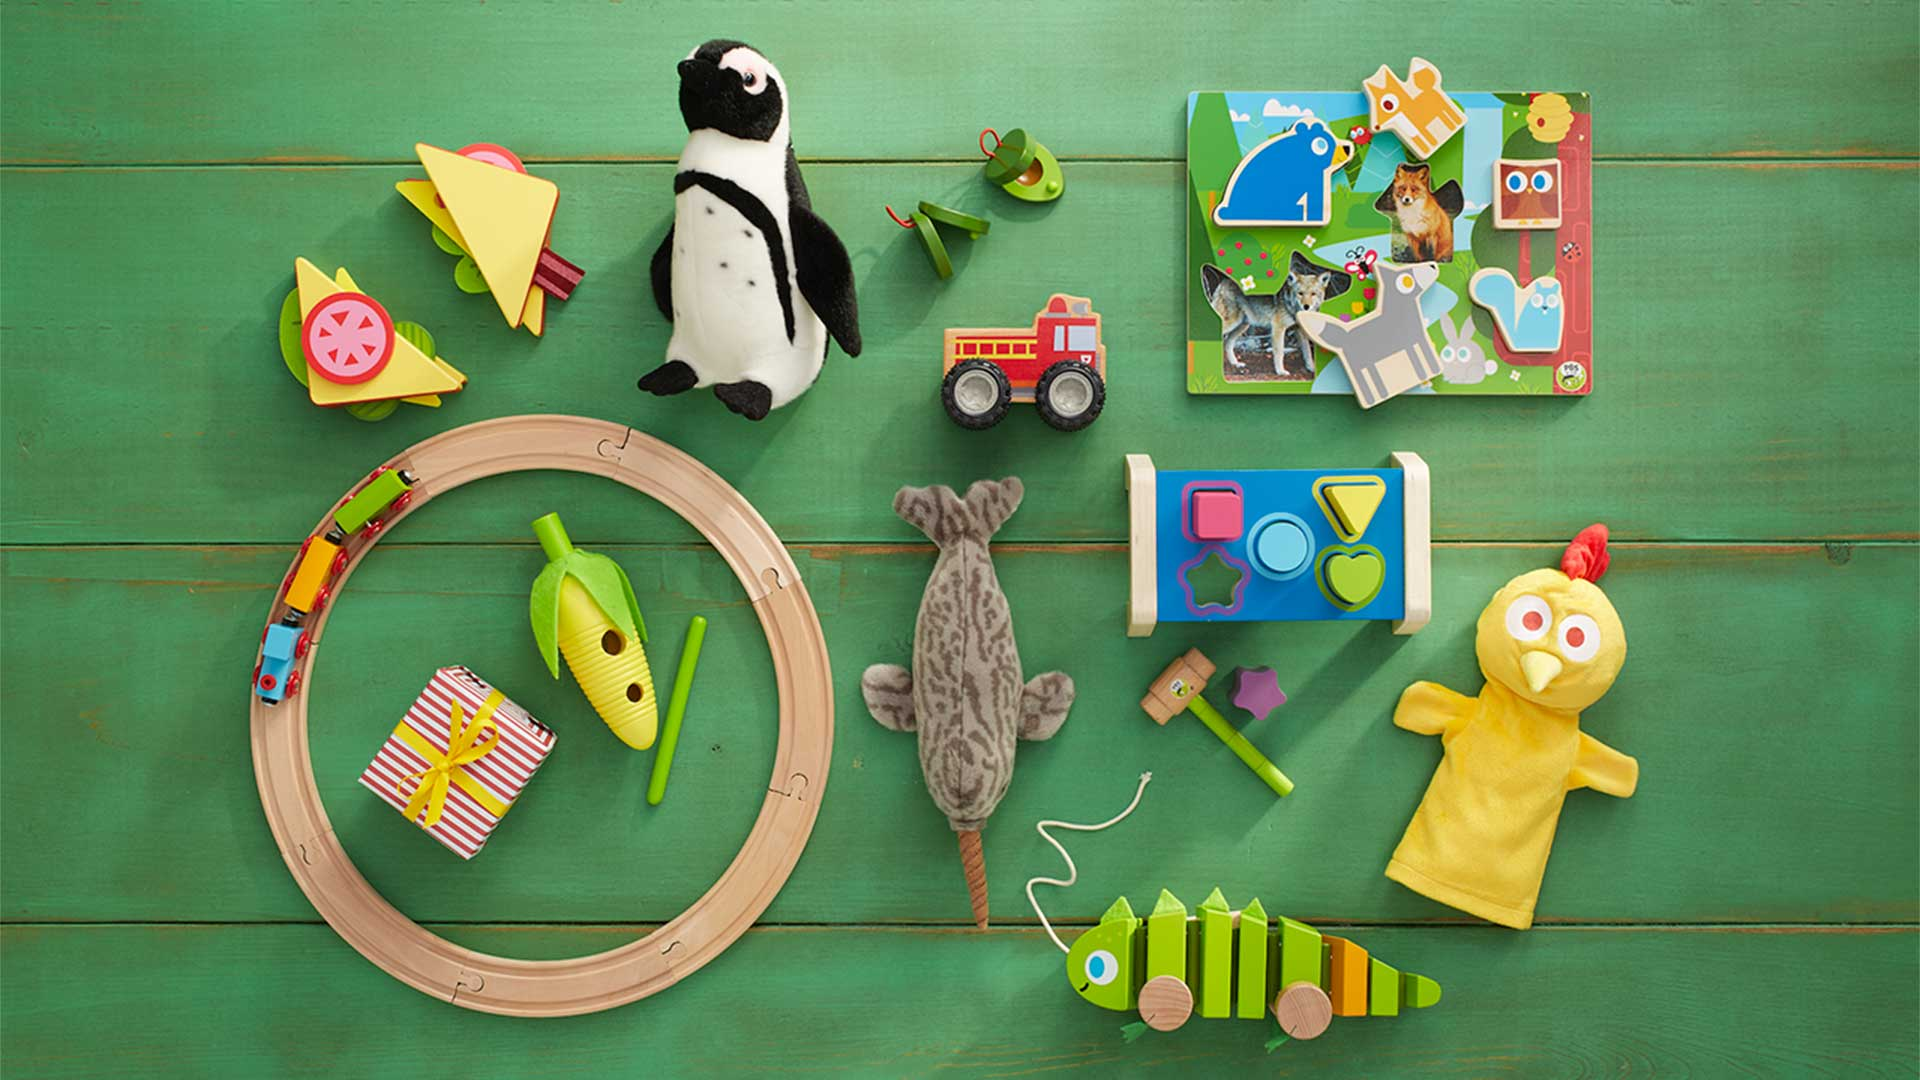 PBS KIDS and EverEarth have partnered together to create a line of toys that are designed to inspire creativity.